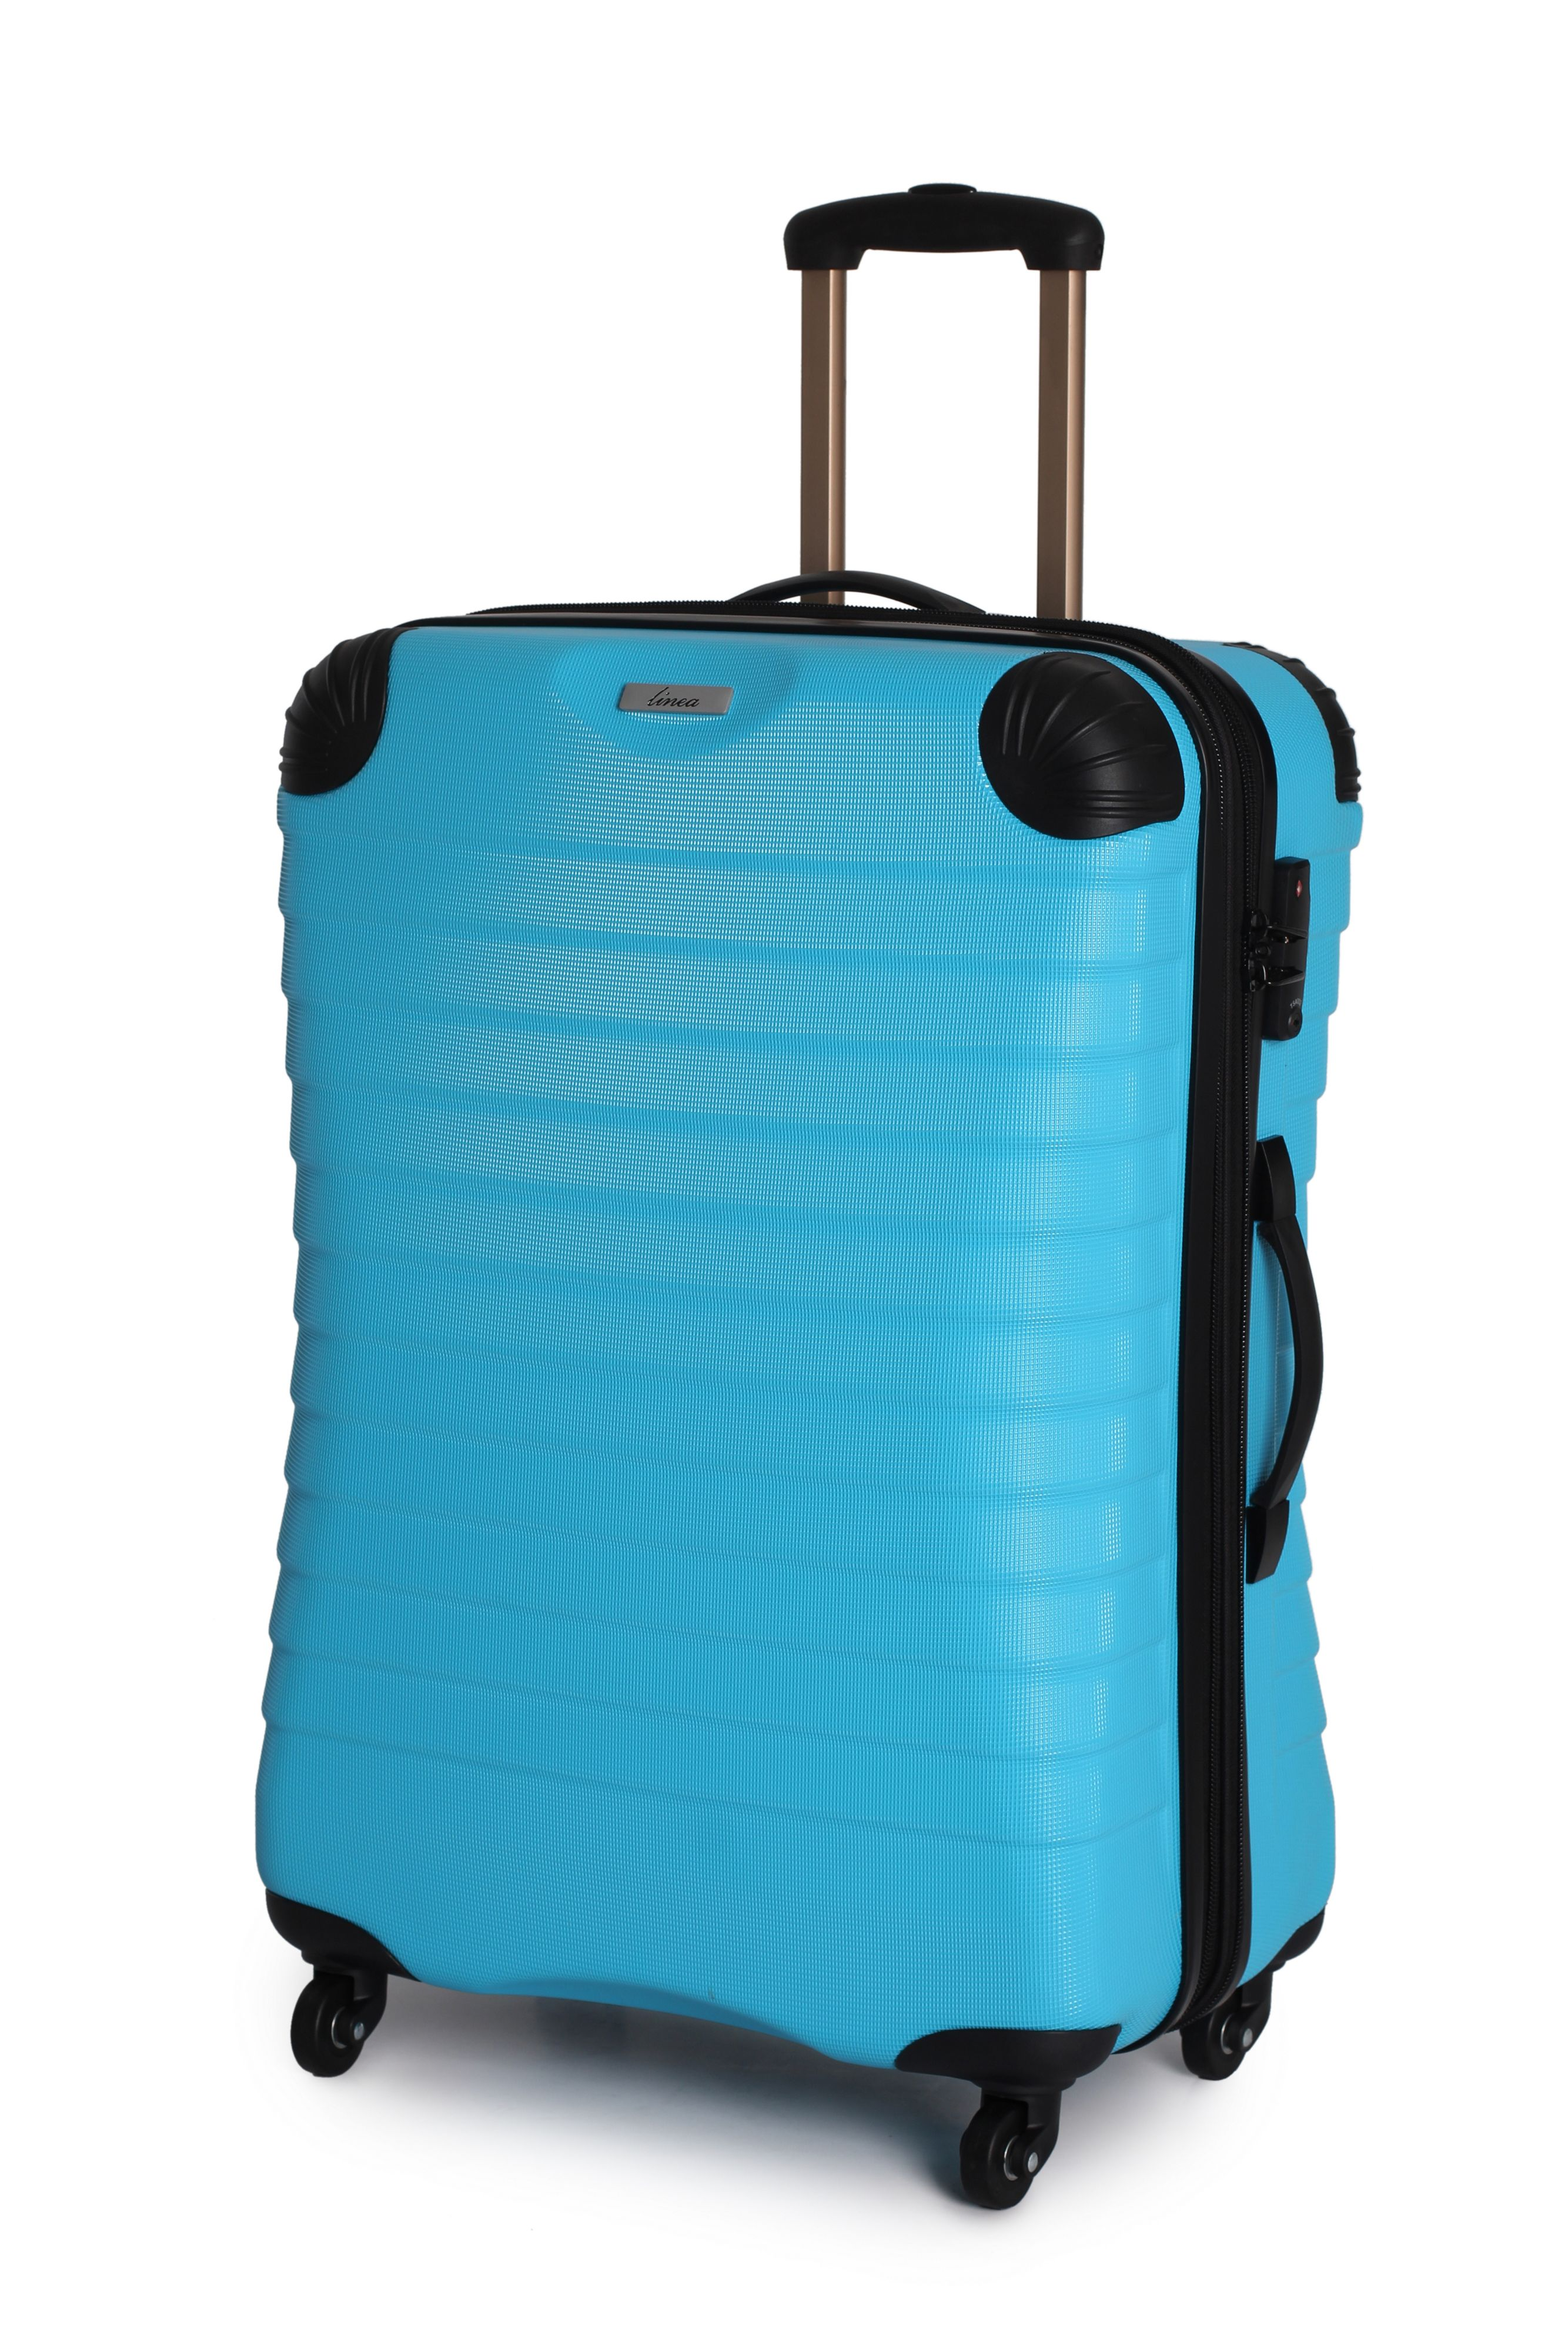 Linea Shell aqua 4 wheel hard medium case Aqua